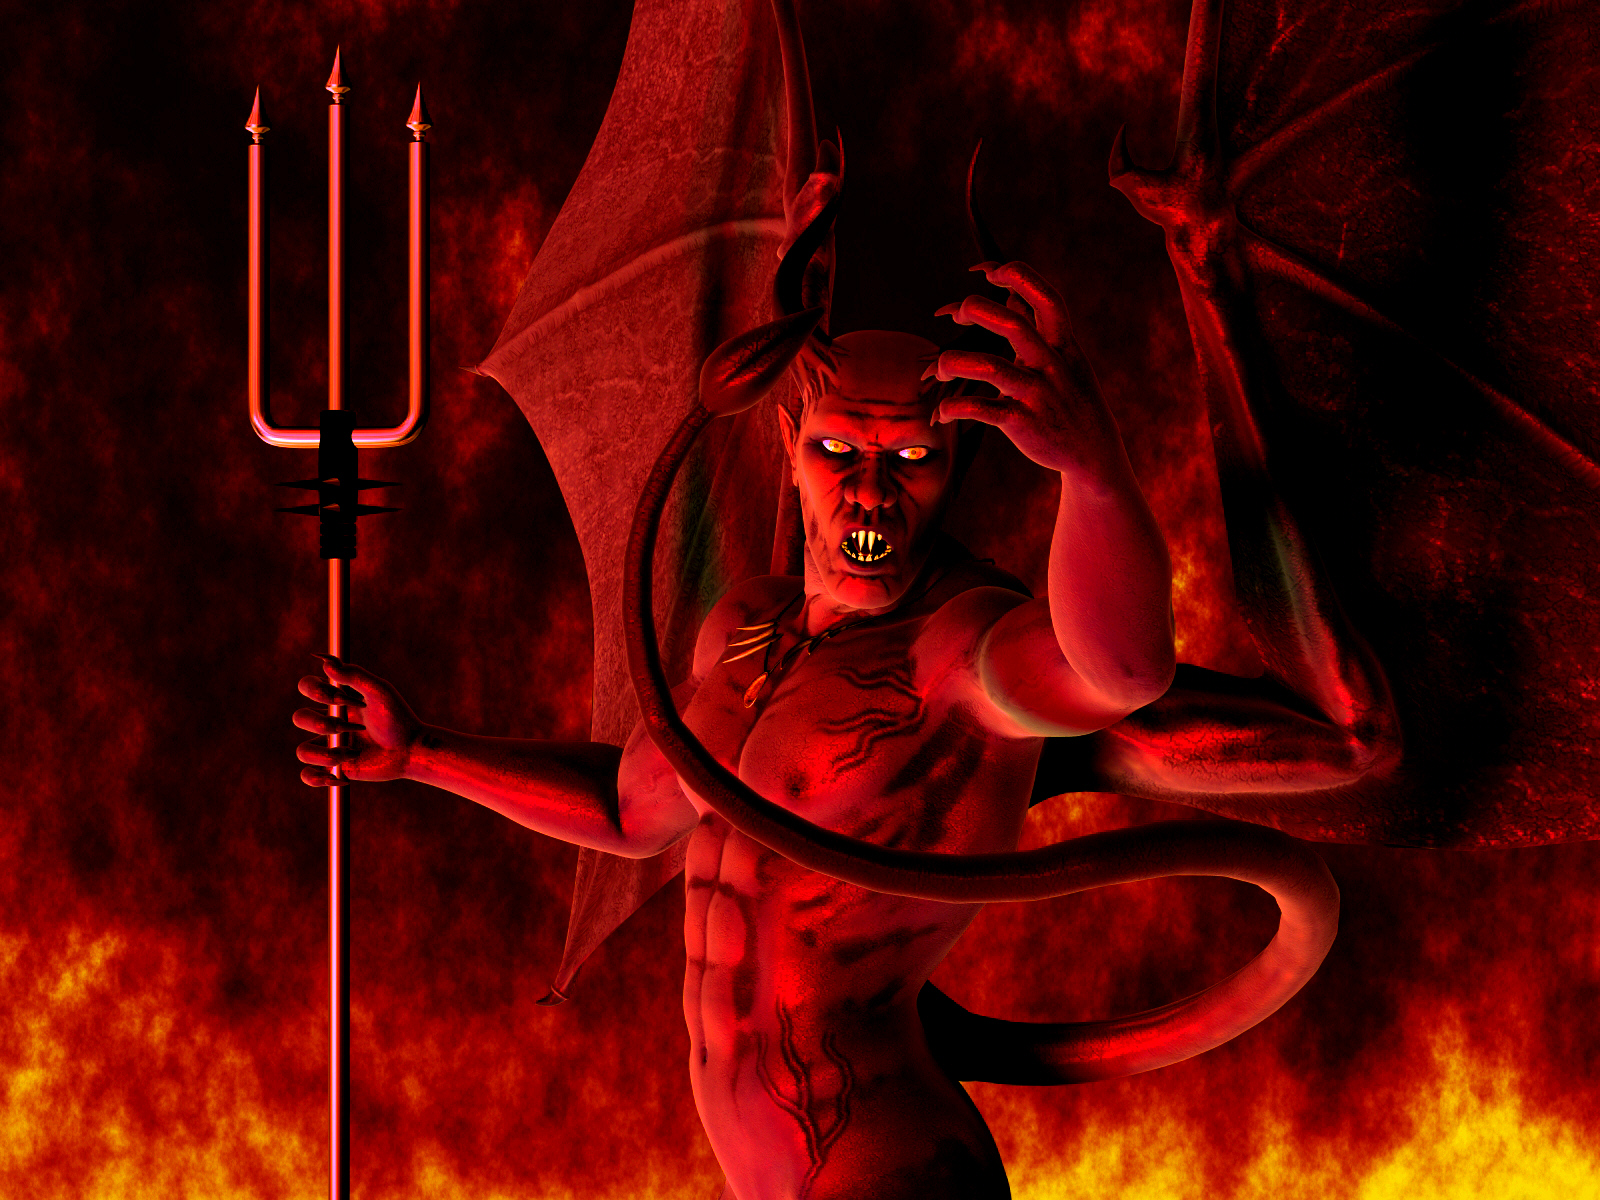 http://vignette3.wikia.nocookie.net/leftbehind/images/d/df/3650584-satan-editorial.jpg/revision/latest?cb=20141207230919